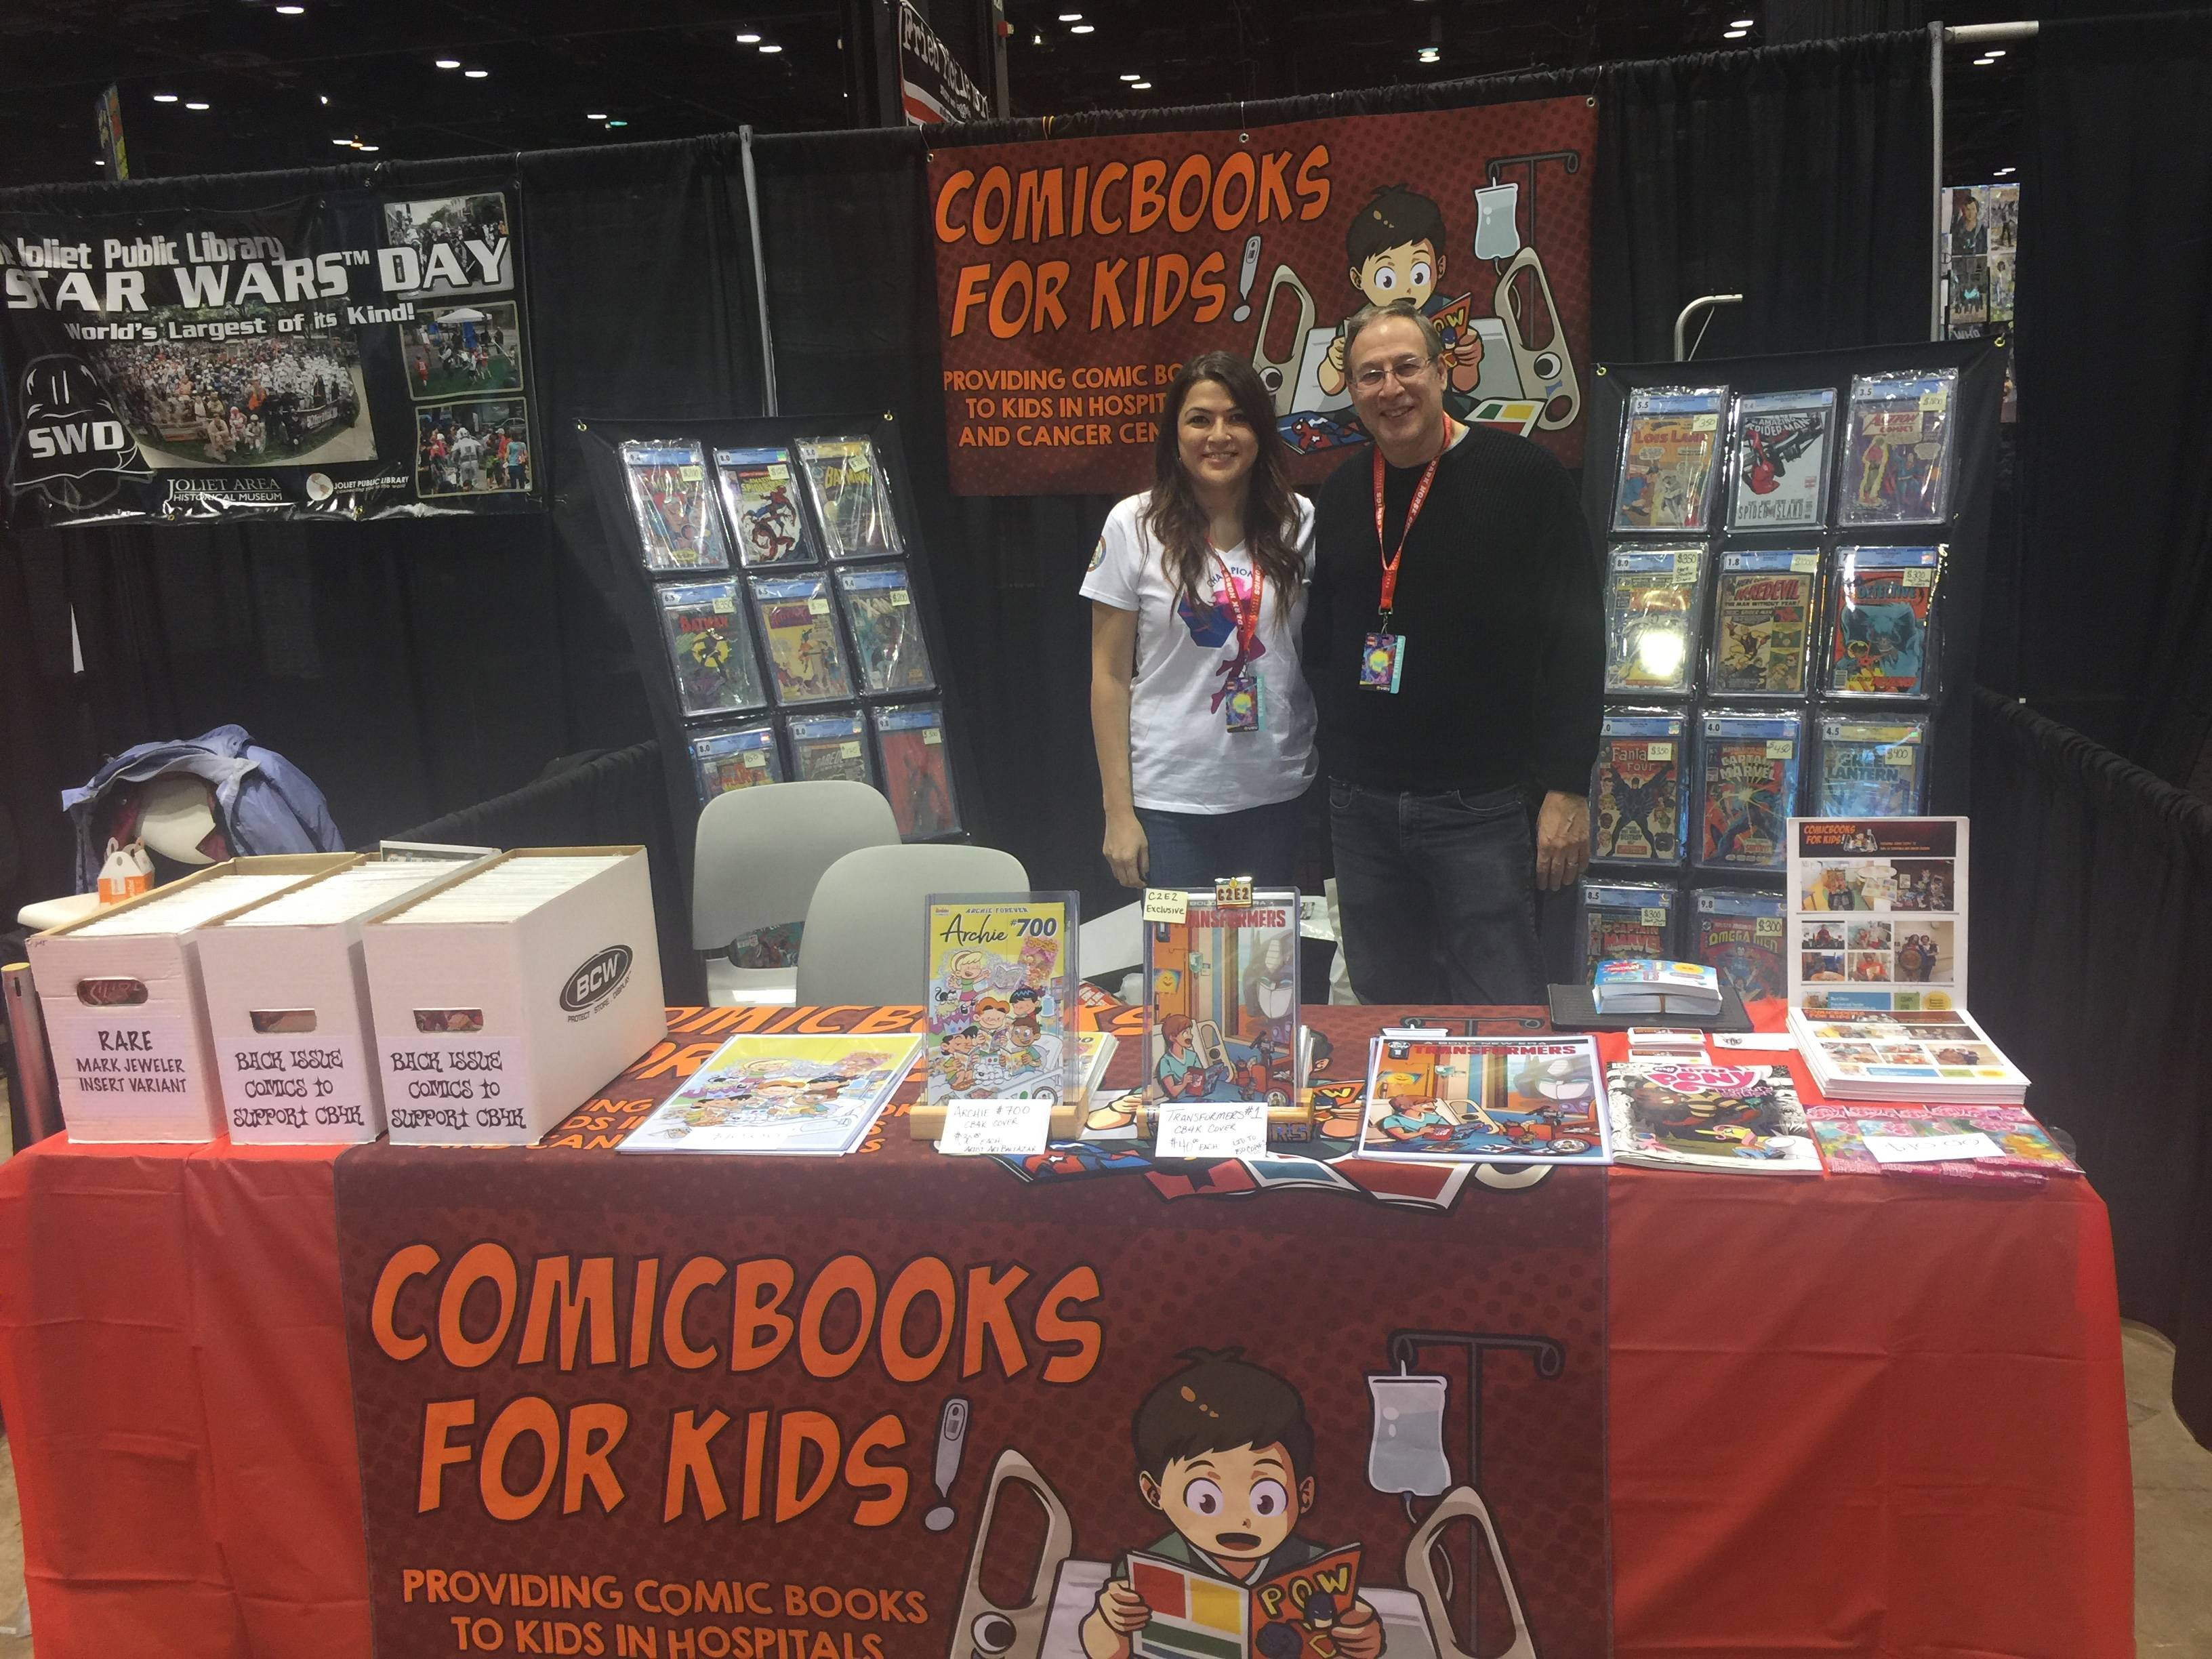 From left, Michelle Weiss, vice president of ComicBooks for Kids!, a St. Charles-based charity that distributes new comics to children in hospitals and cancer treatment centers, with her father Mark Weiss, founder of the nonprofit, at their booth at C2E2.